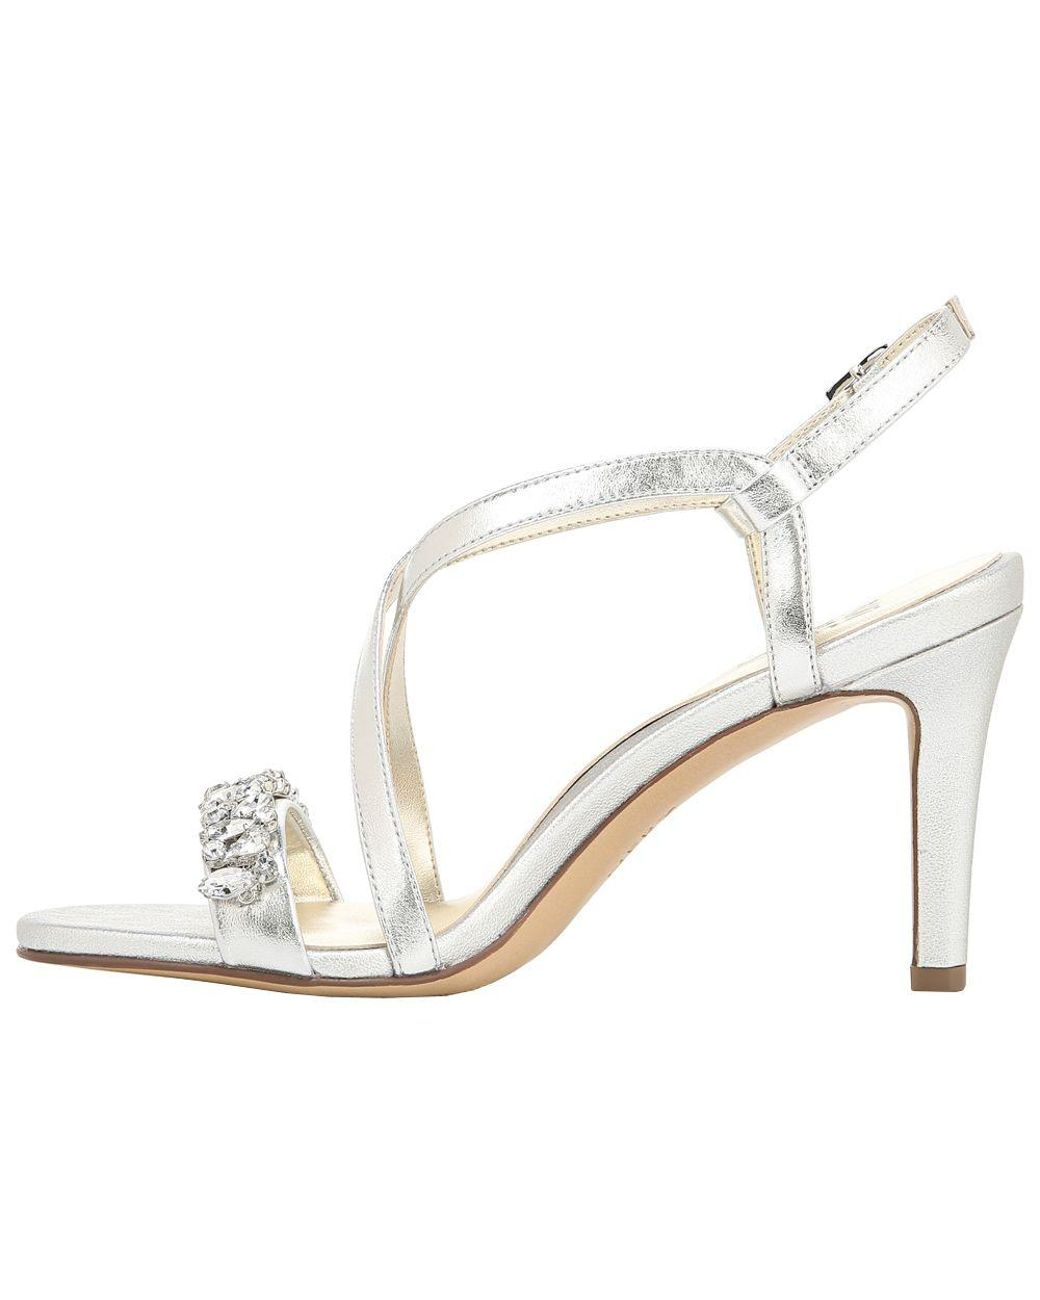 18e66400ad19 Lyst - Naturalizer Kia Evening Leather Dress Sandals in Metallic - Save 31%